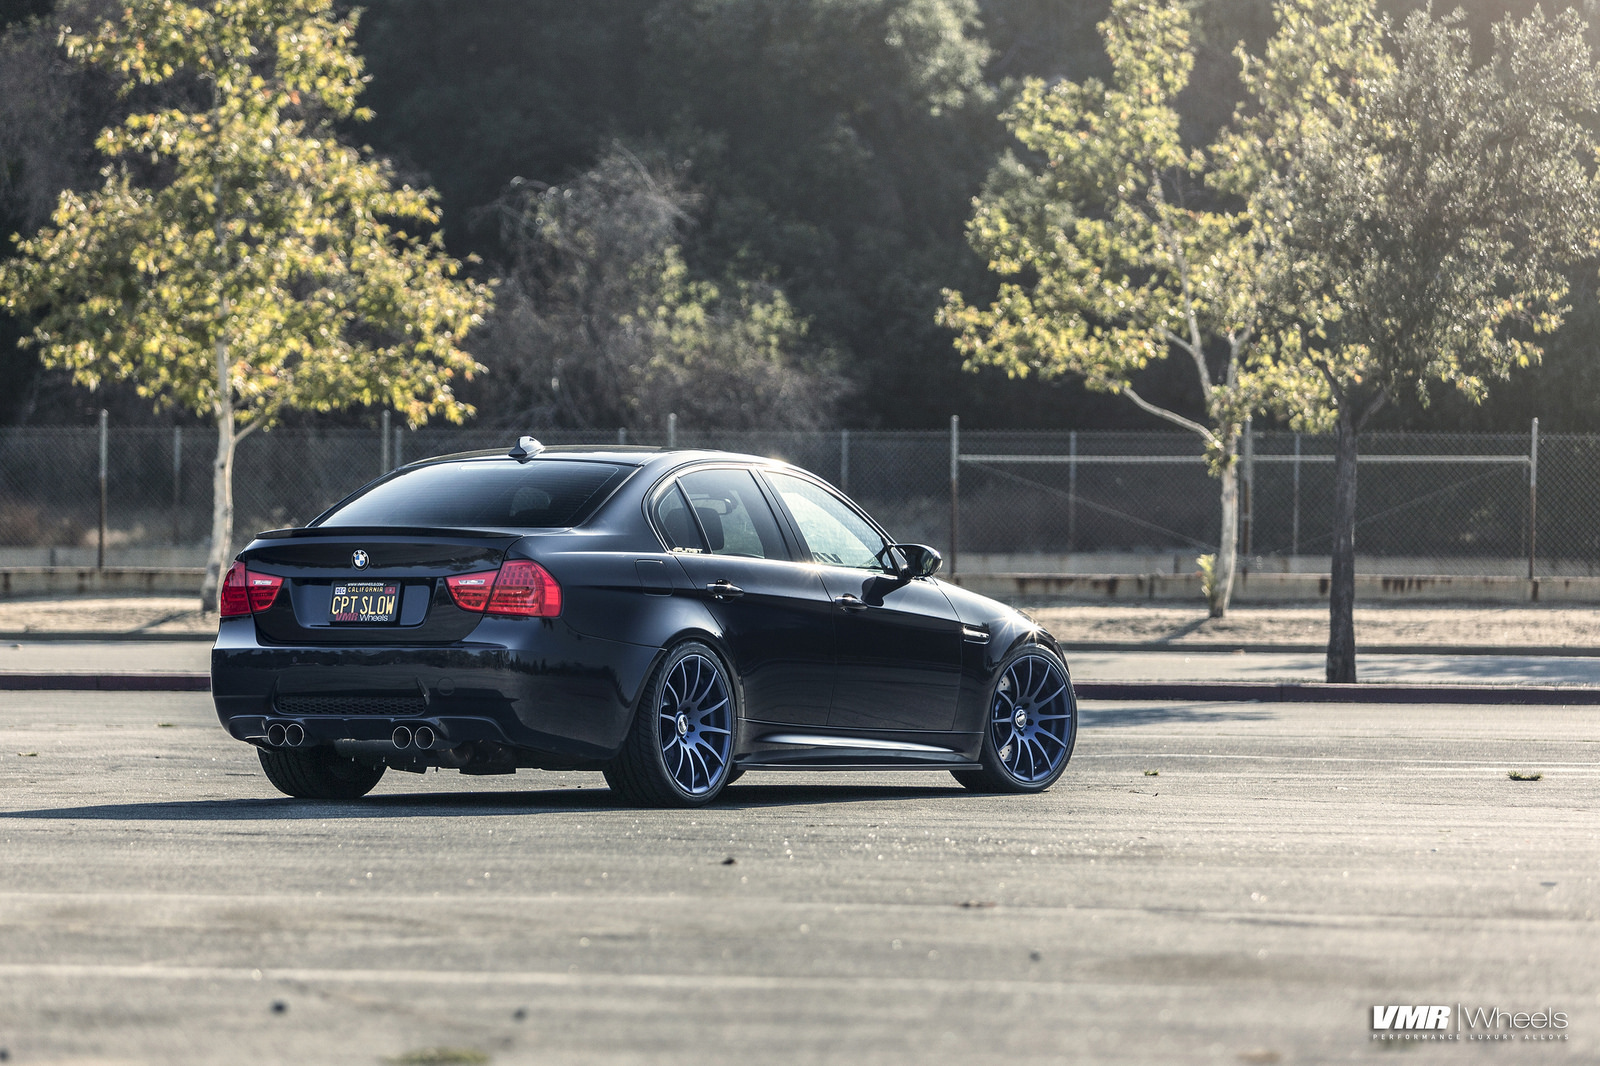 e90-bmw-m3-onvmr-wheels-9